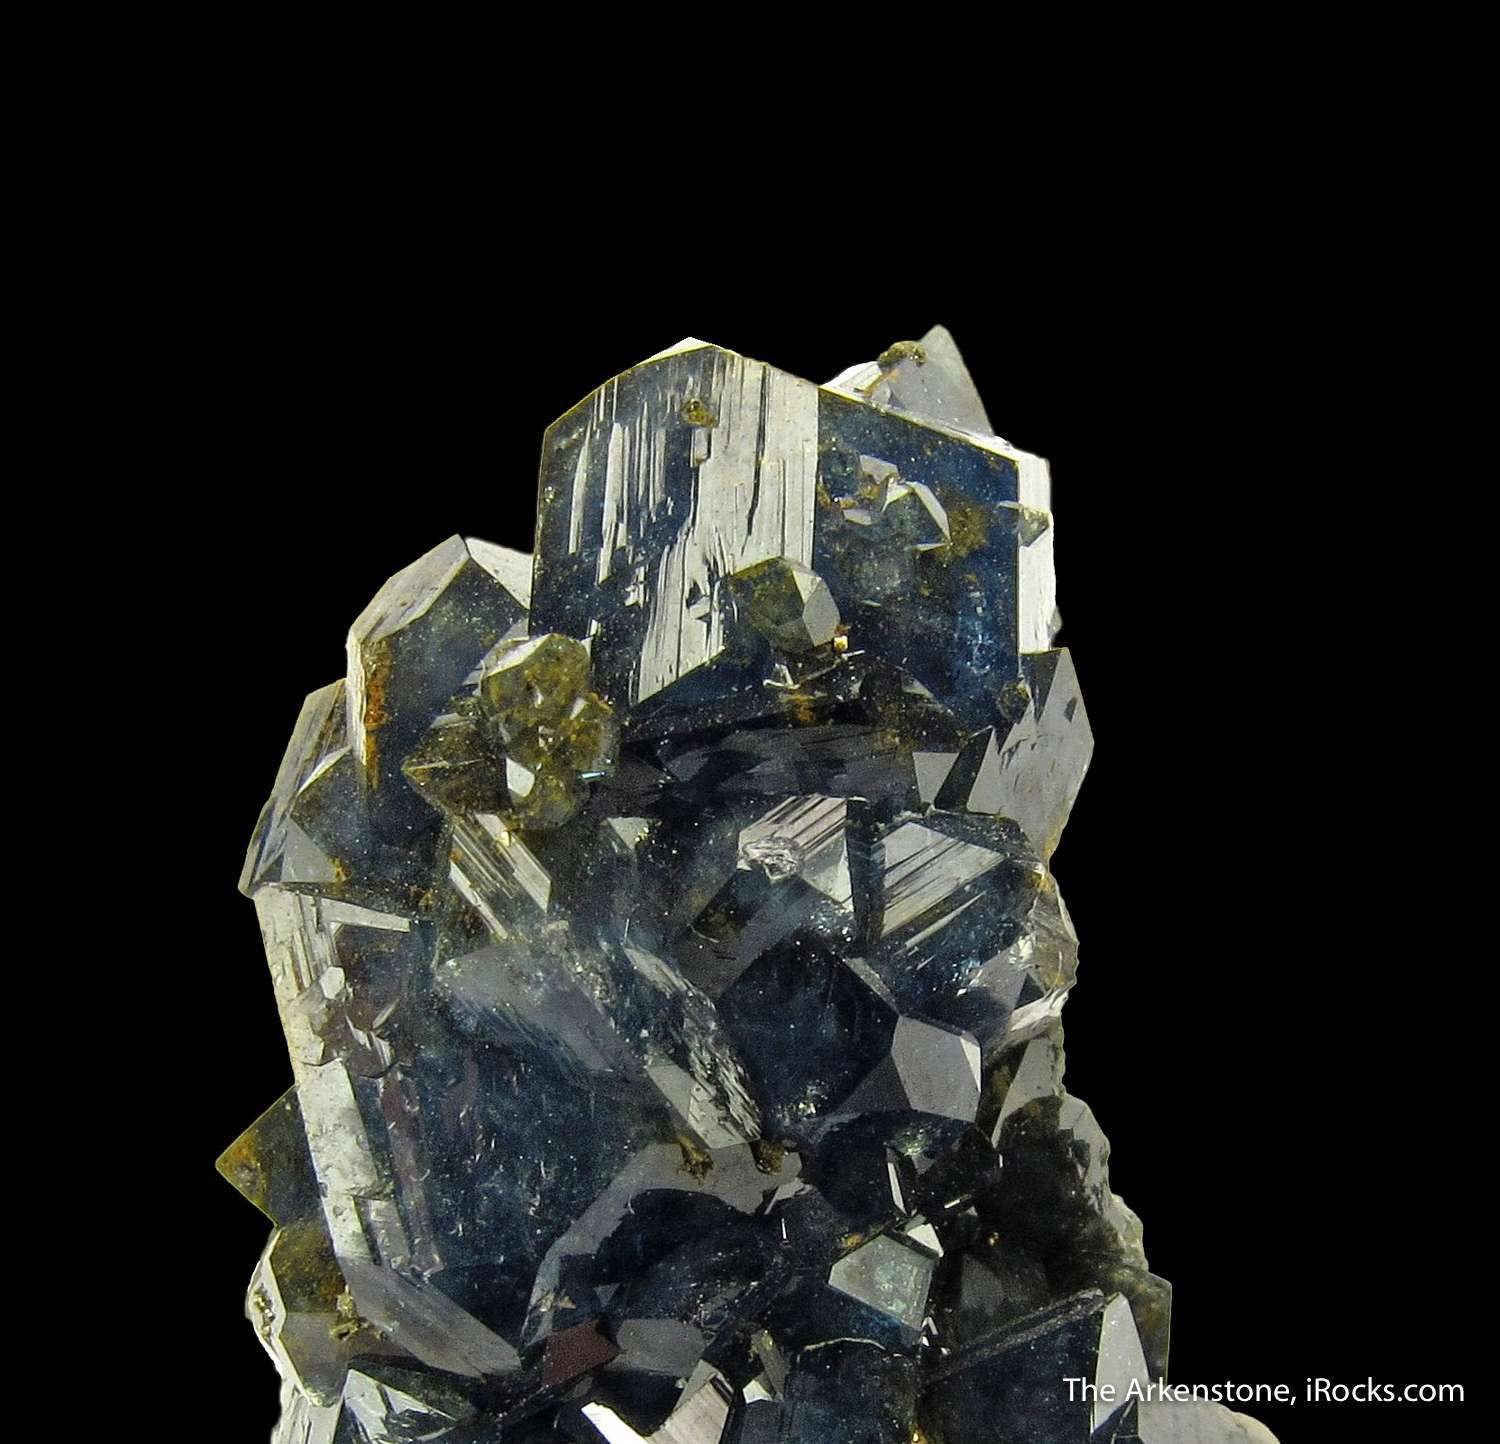 A lustrous 8 mm formed crystal crowns tower crystallized Scorodite